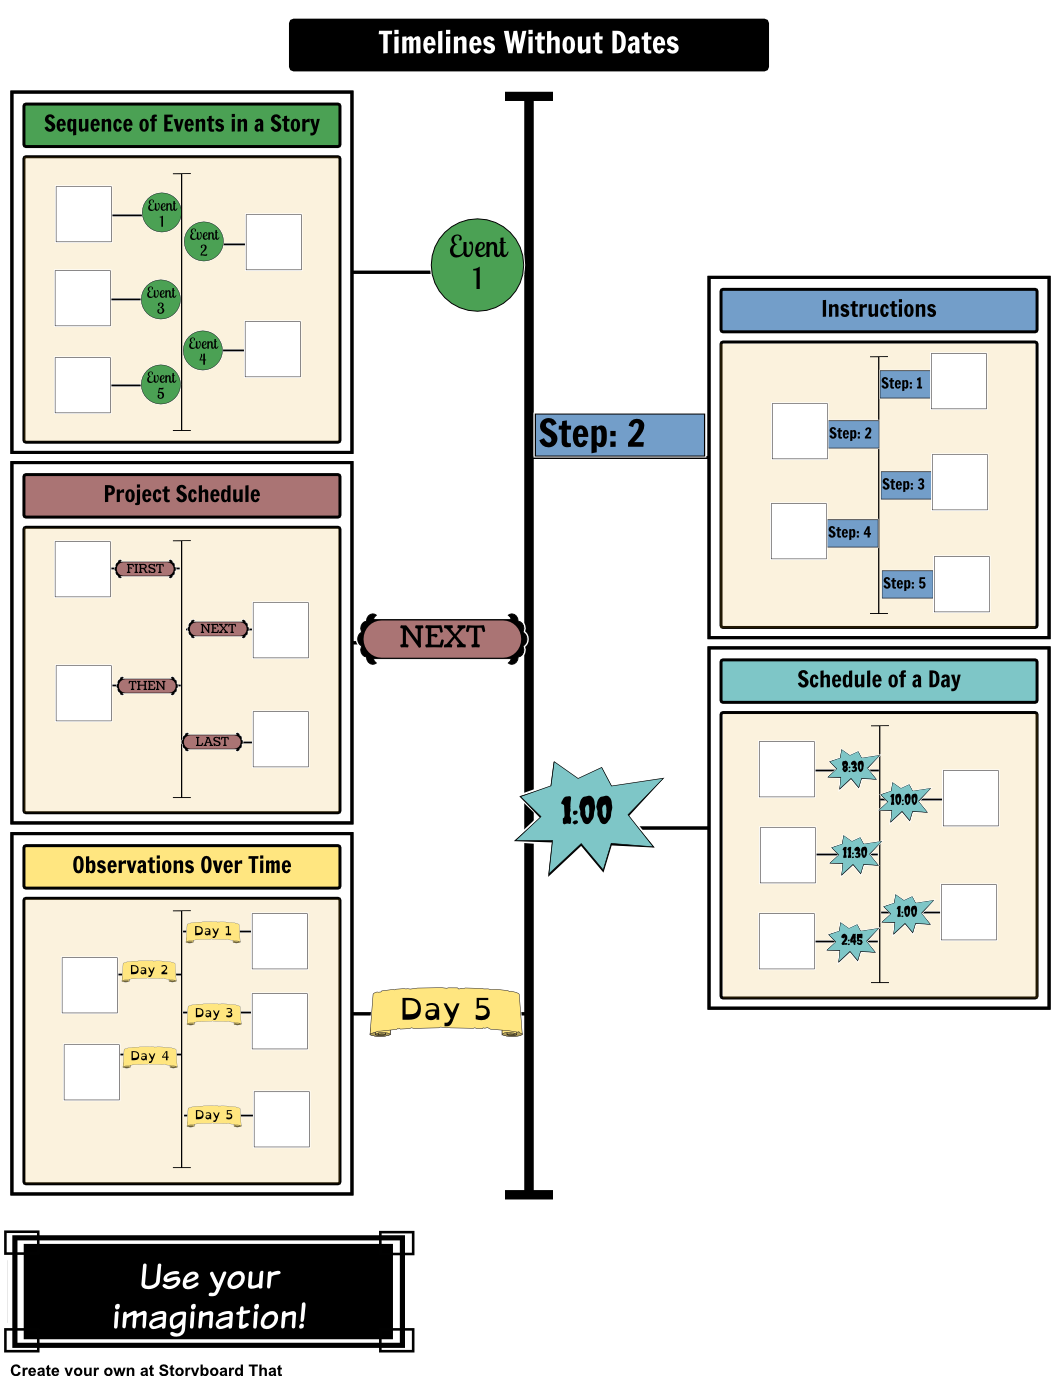 the timeline is still a valuable tool for sequencing events giving